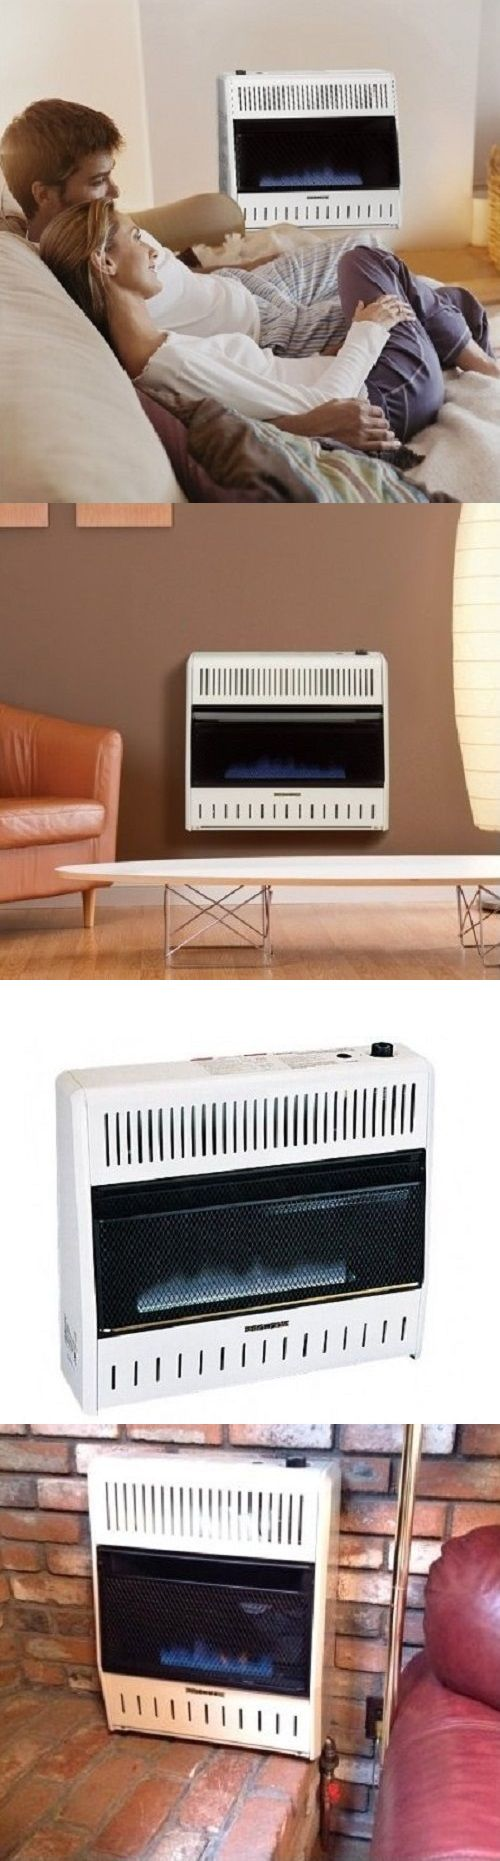 Space Heaters 20613: Gas Heaters Wall Mounted Blue Flame Vent Free Blower Base Natural Or Propane 30K -> BUY IT NOW ONLY: $303.88 on eBay!